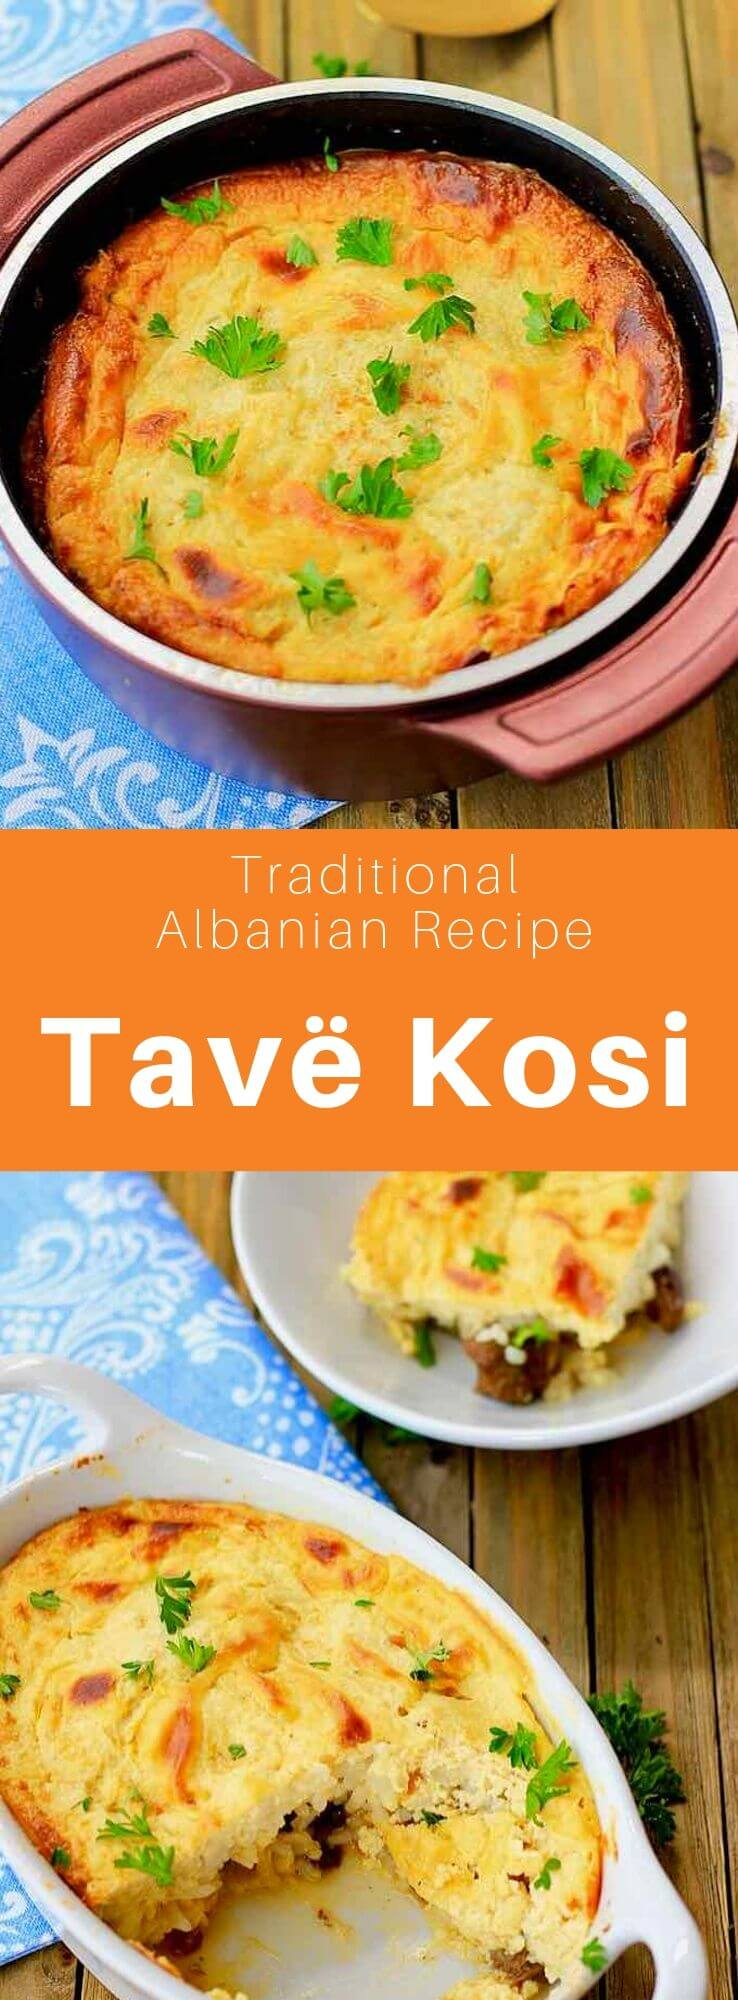 Tavë kosi (or Elbasan tava) is a traditional Albanian dish made from rice and baked lamb, also popular in Greece and Turkey. #Albania #AlbanianCuisine #AlbanianRecipe #TurkishCuisine #TurkishRecipe #GreekCuisine #GreekRecipe #WorldCuisine #196flavors